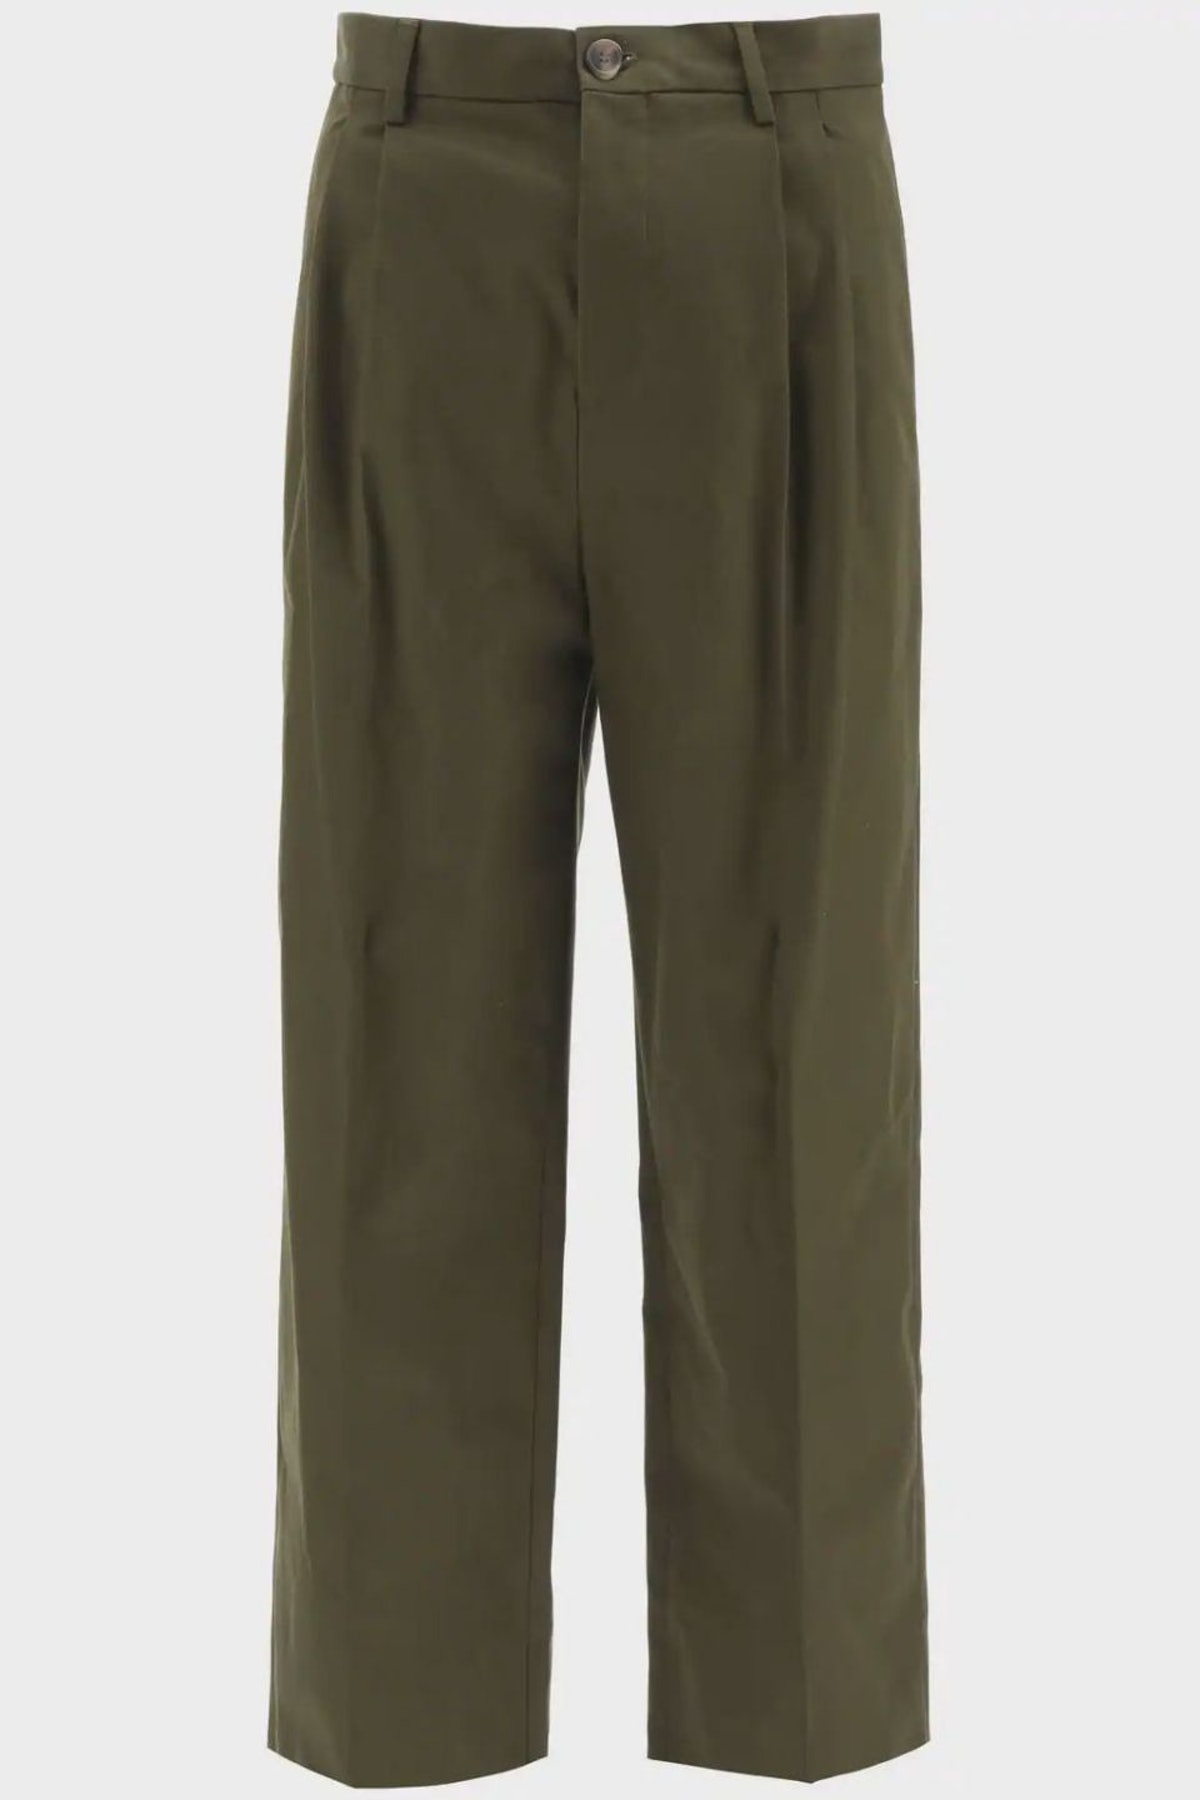 Loewe Chino Trousers Anagram Embroidery